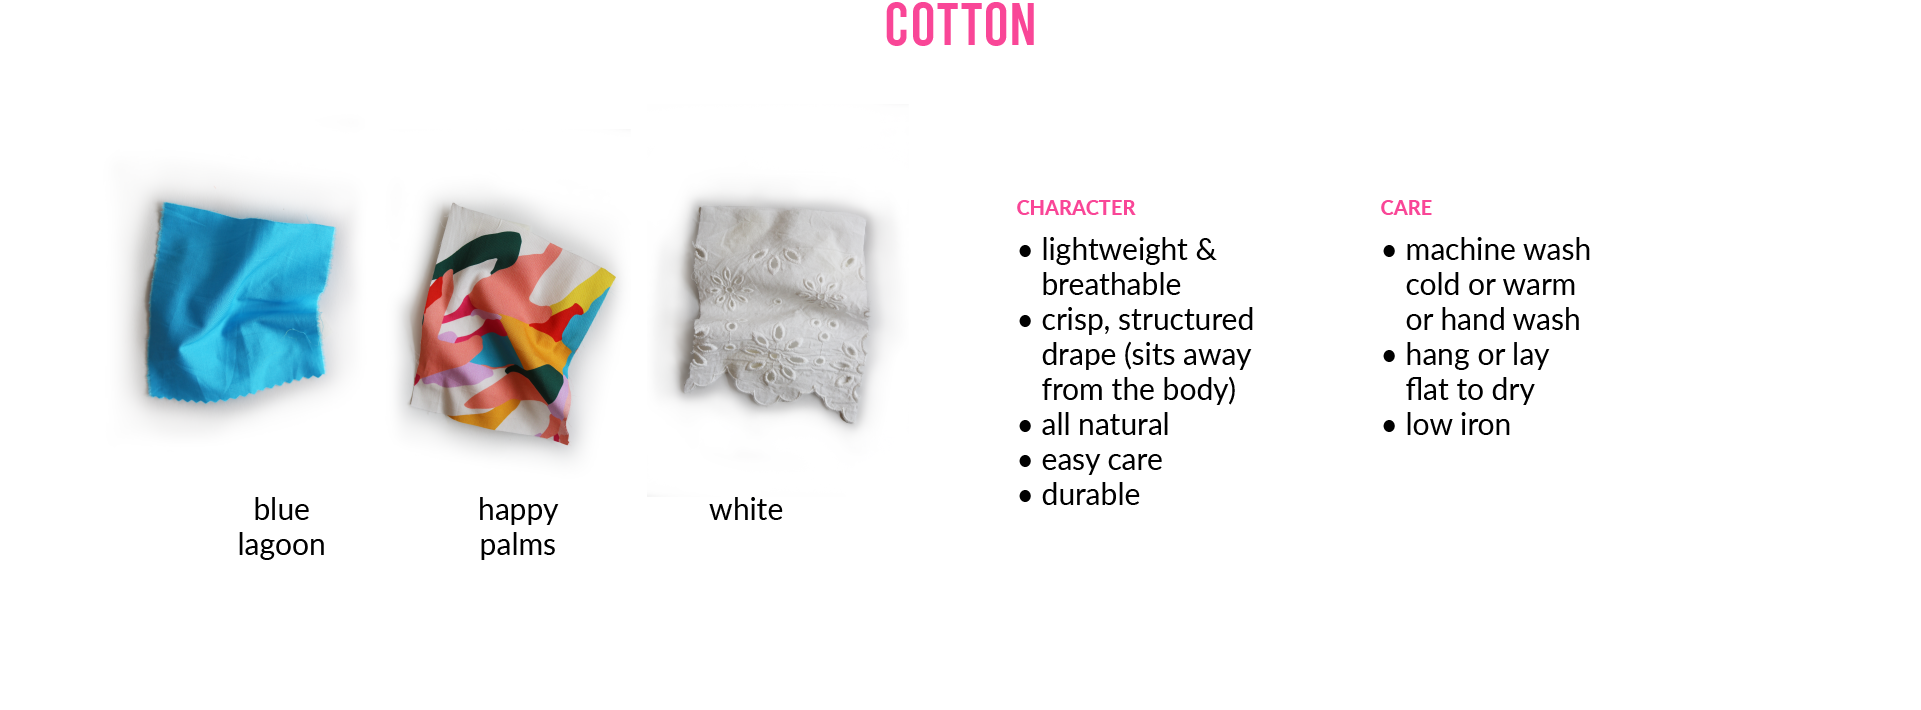 Cotton: CHARACTER • lightweight & breathable • crisp, structured drape (sits away from the body) • all natural • easy care • durableCARE • machine wash cold or warm or hand wash • hang or lay flat to dry • low iron